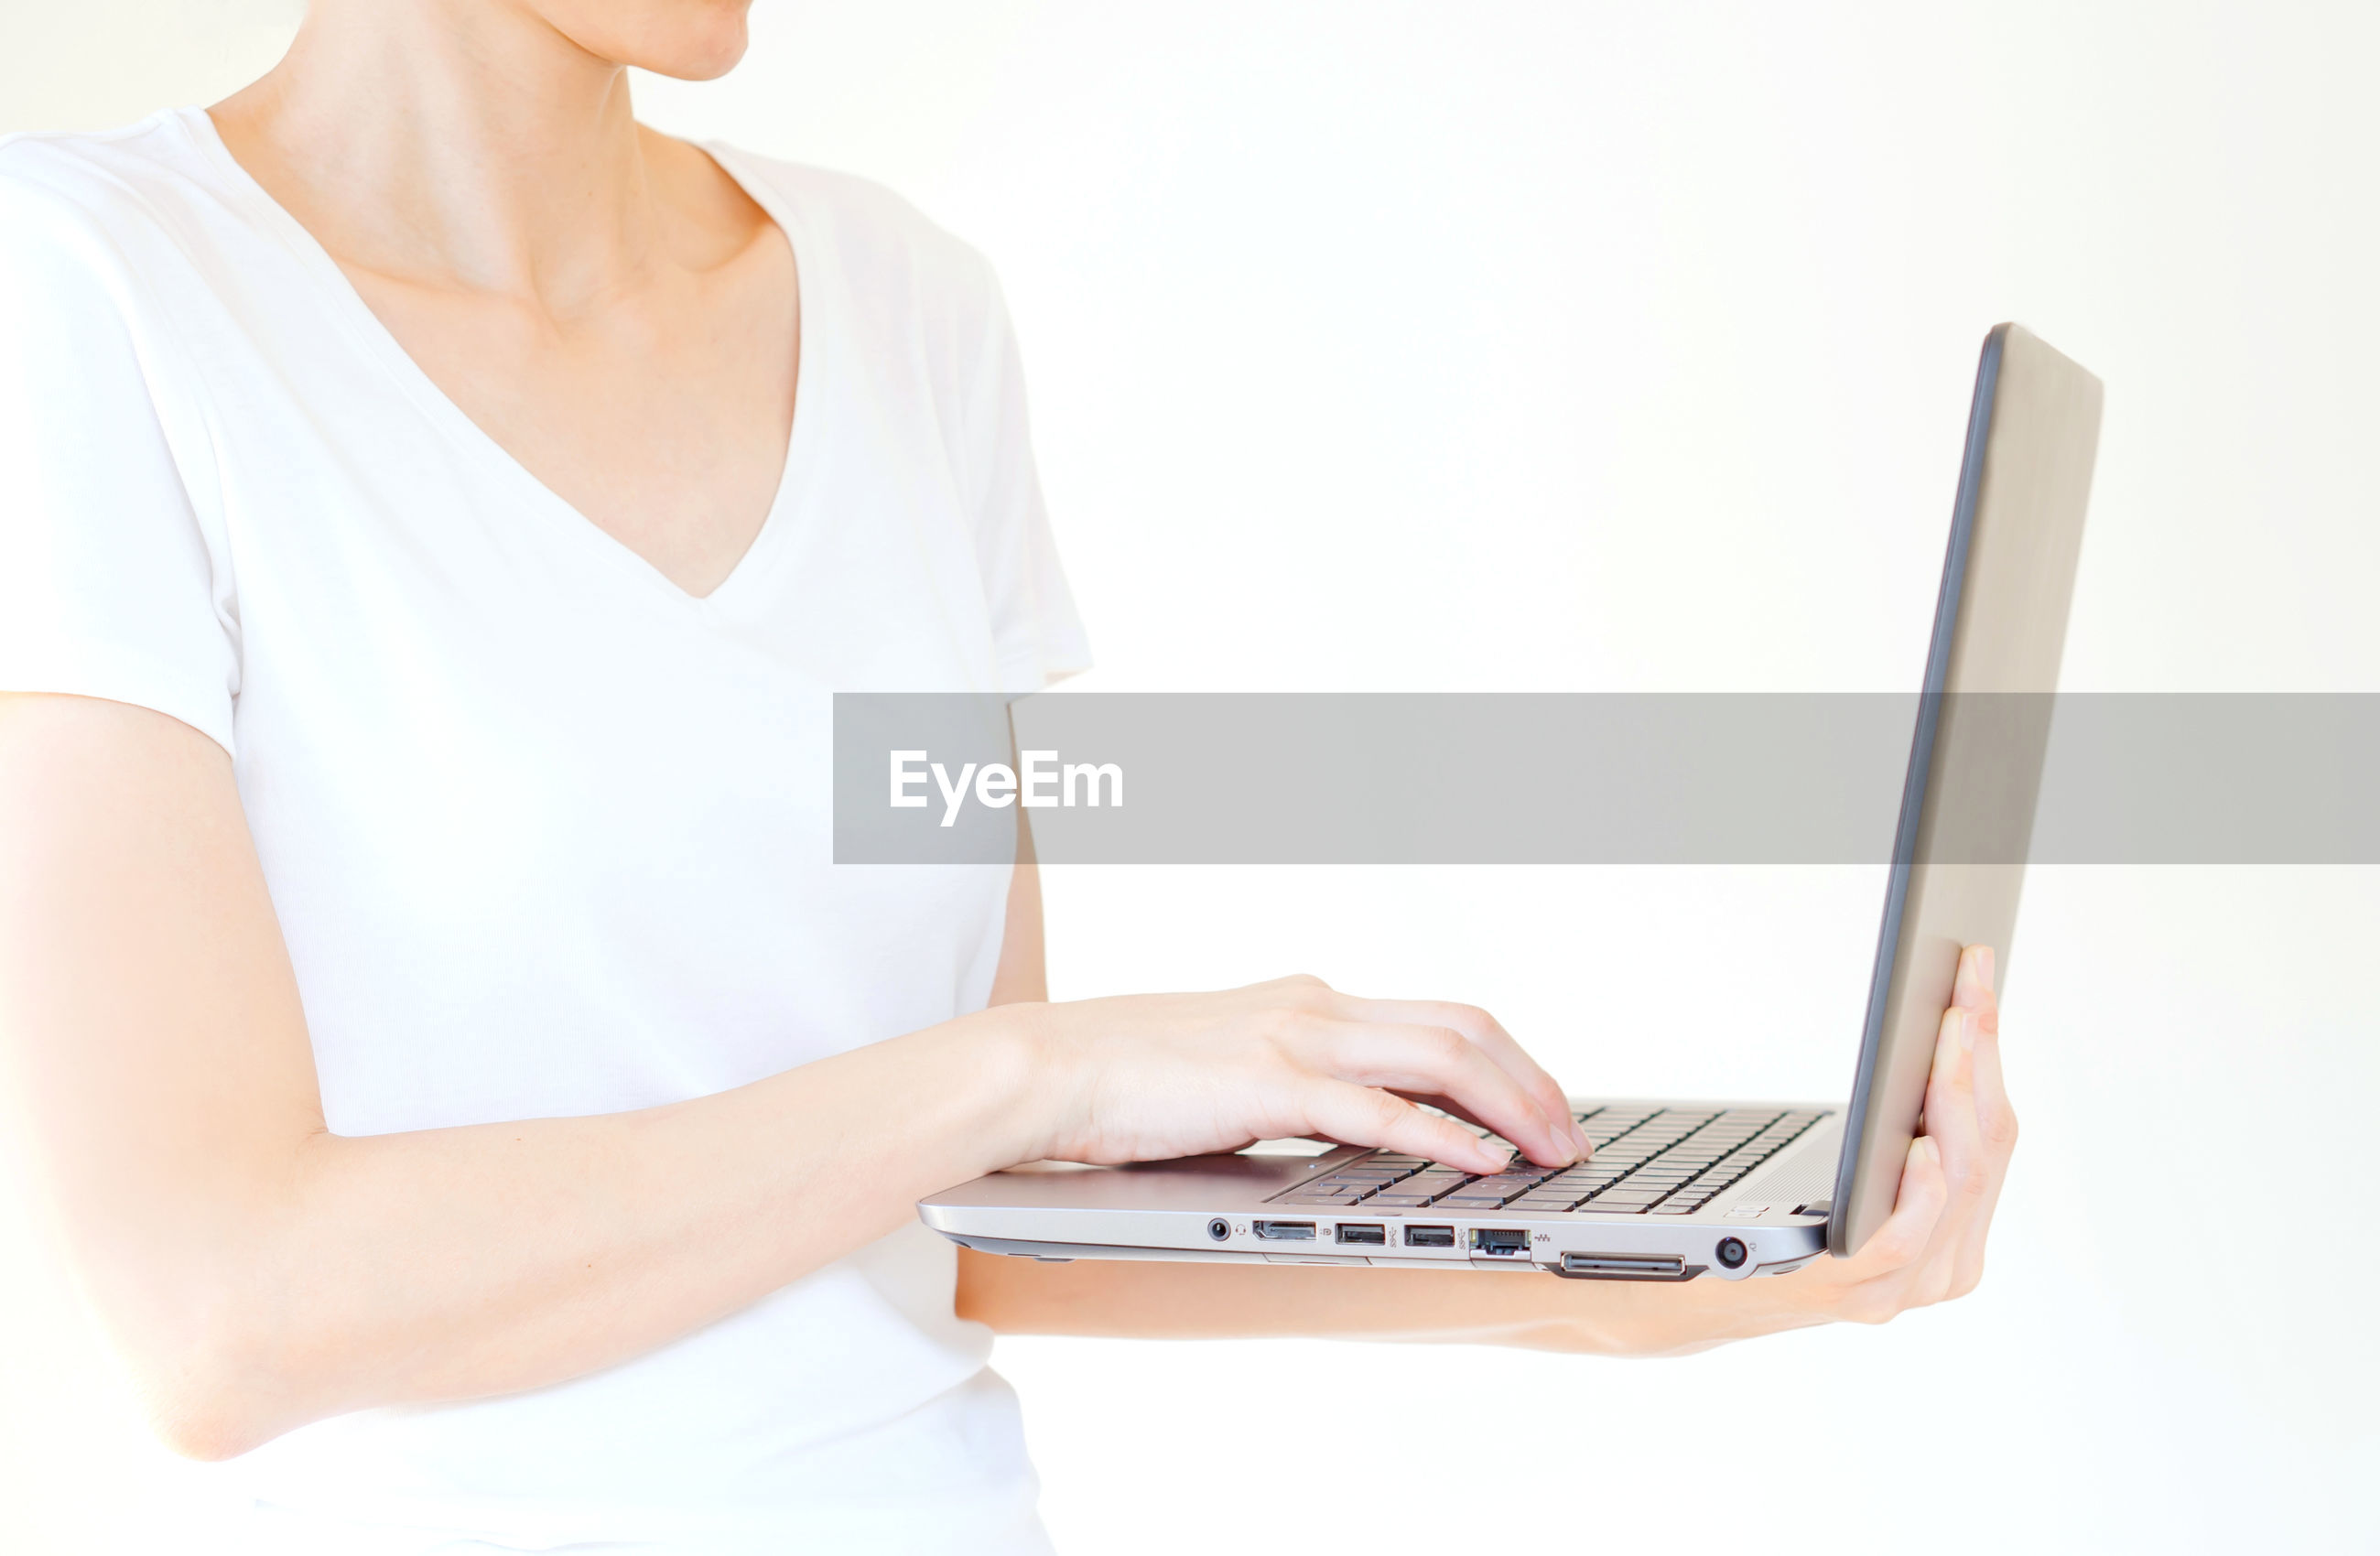 Midsection of woman using laptop against white background